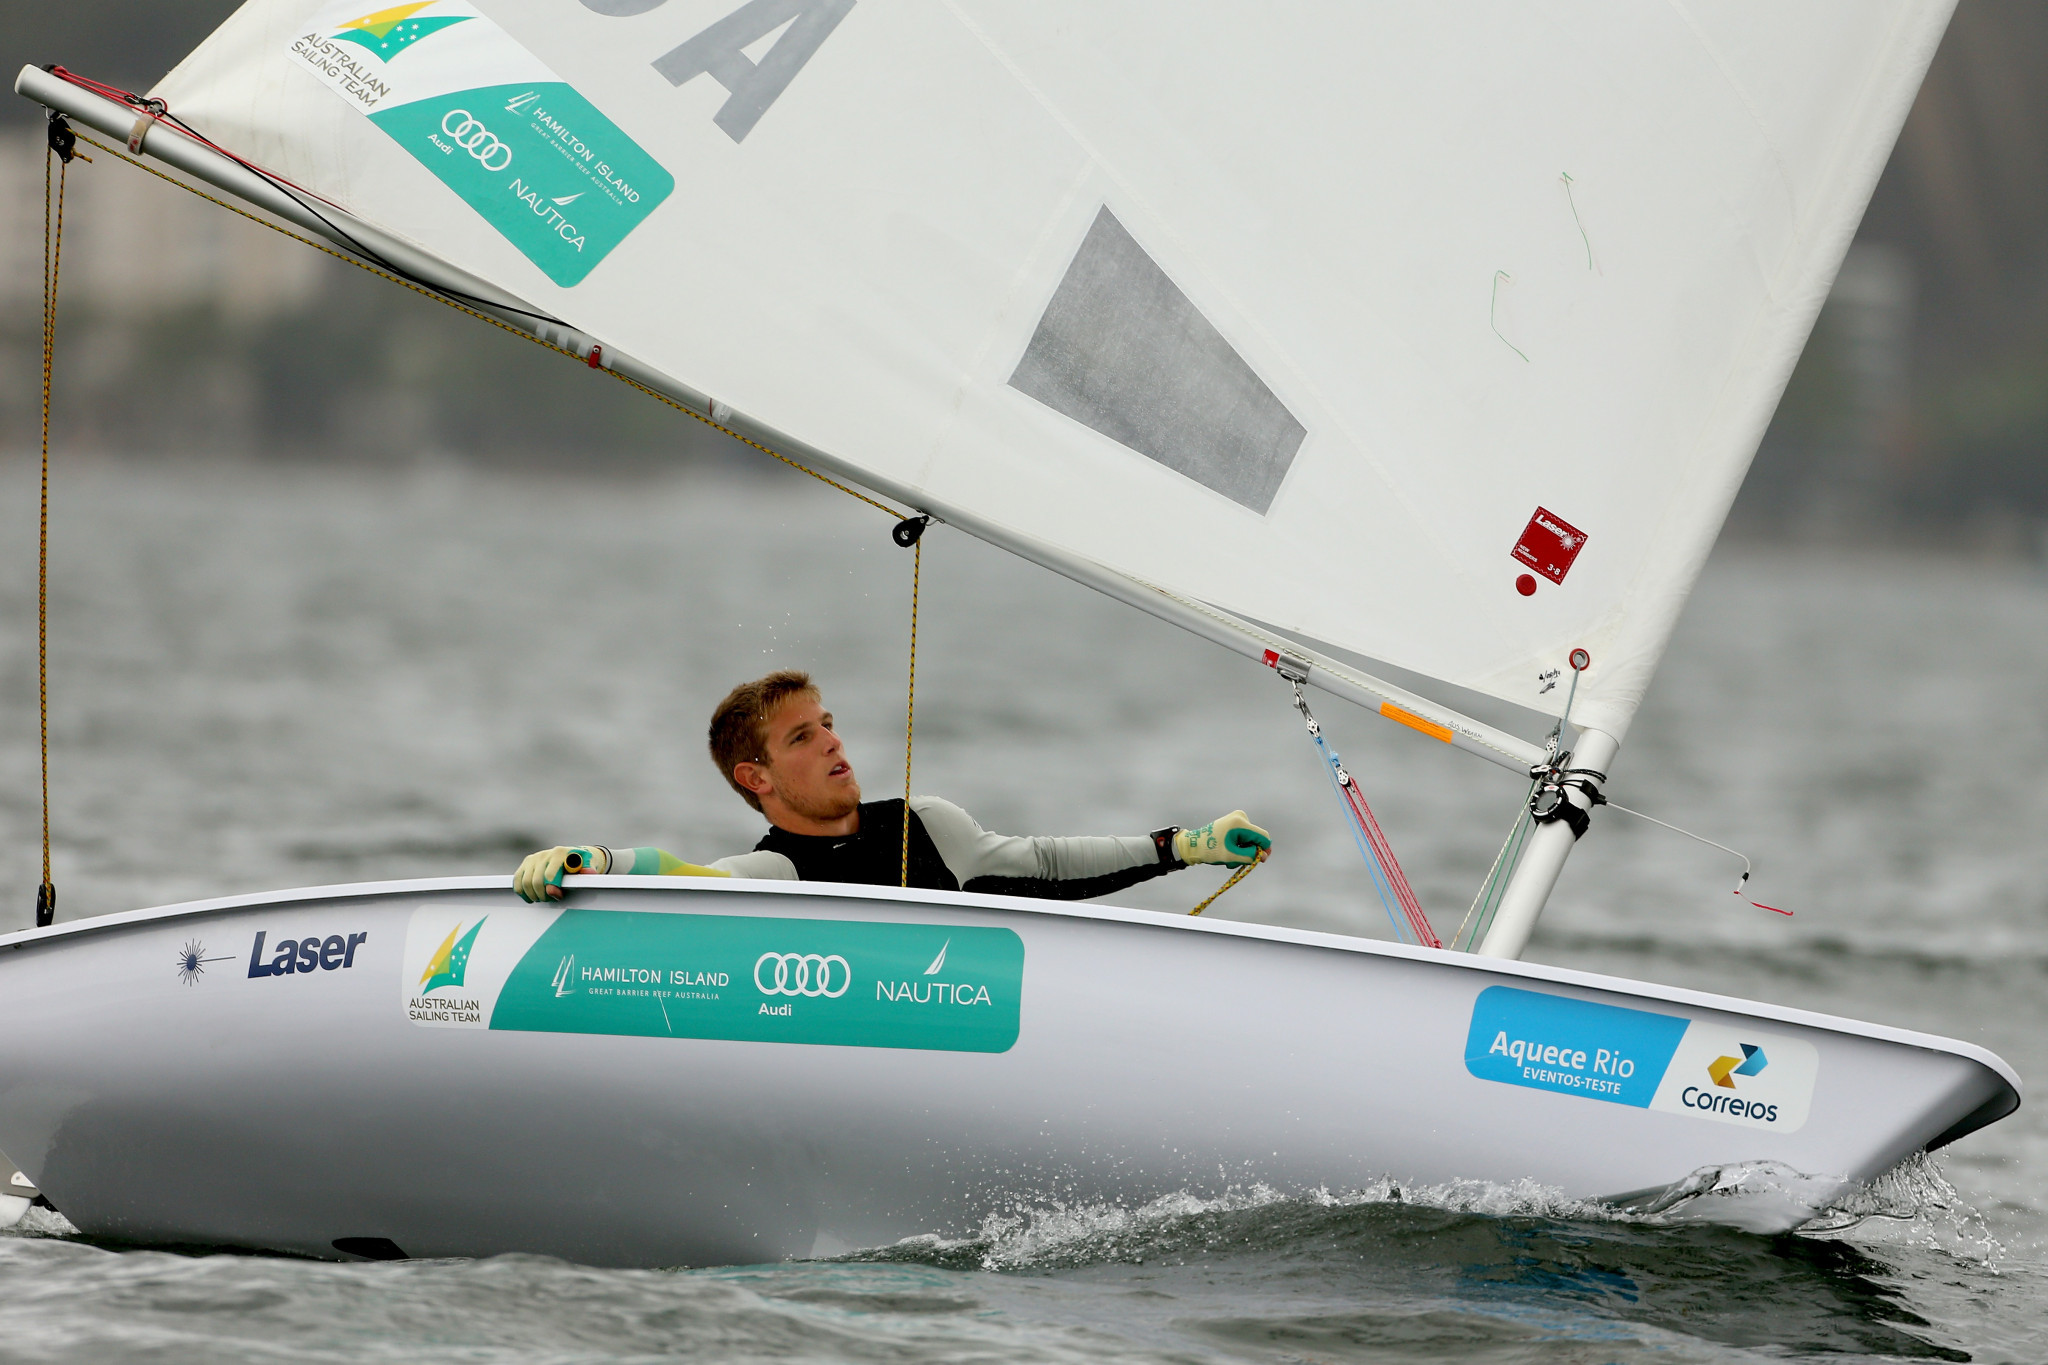 Wearn takes advantage of Meech dip to lead at European Laser Championships